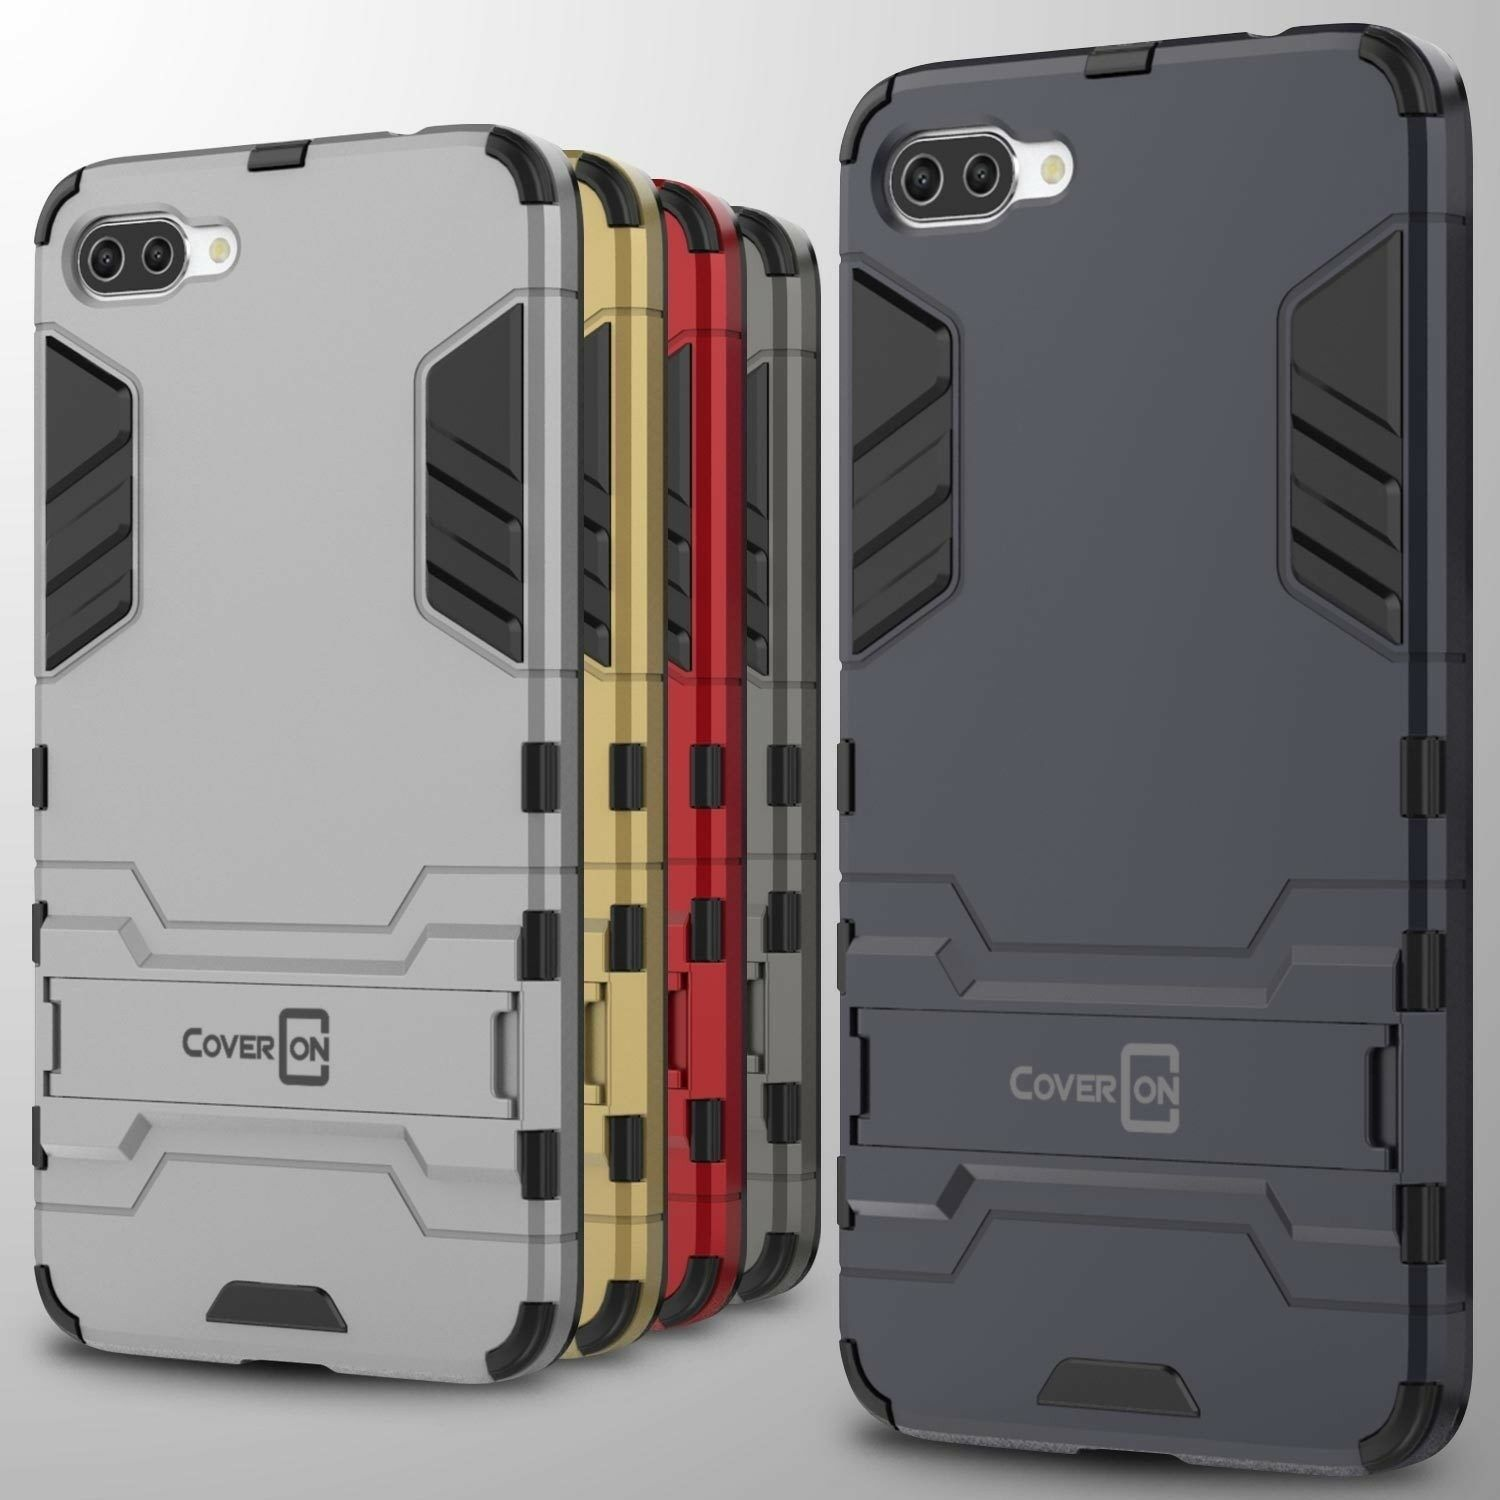 For Asus Zenfone 4 Max 55 Zc554kl Pro Case Hard Kickstand Phone Cover 1 Of 2free Shipping